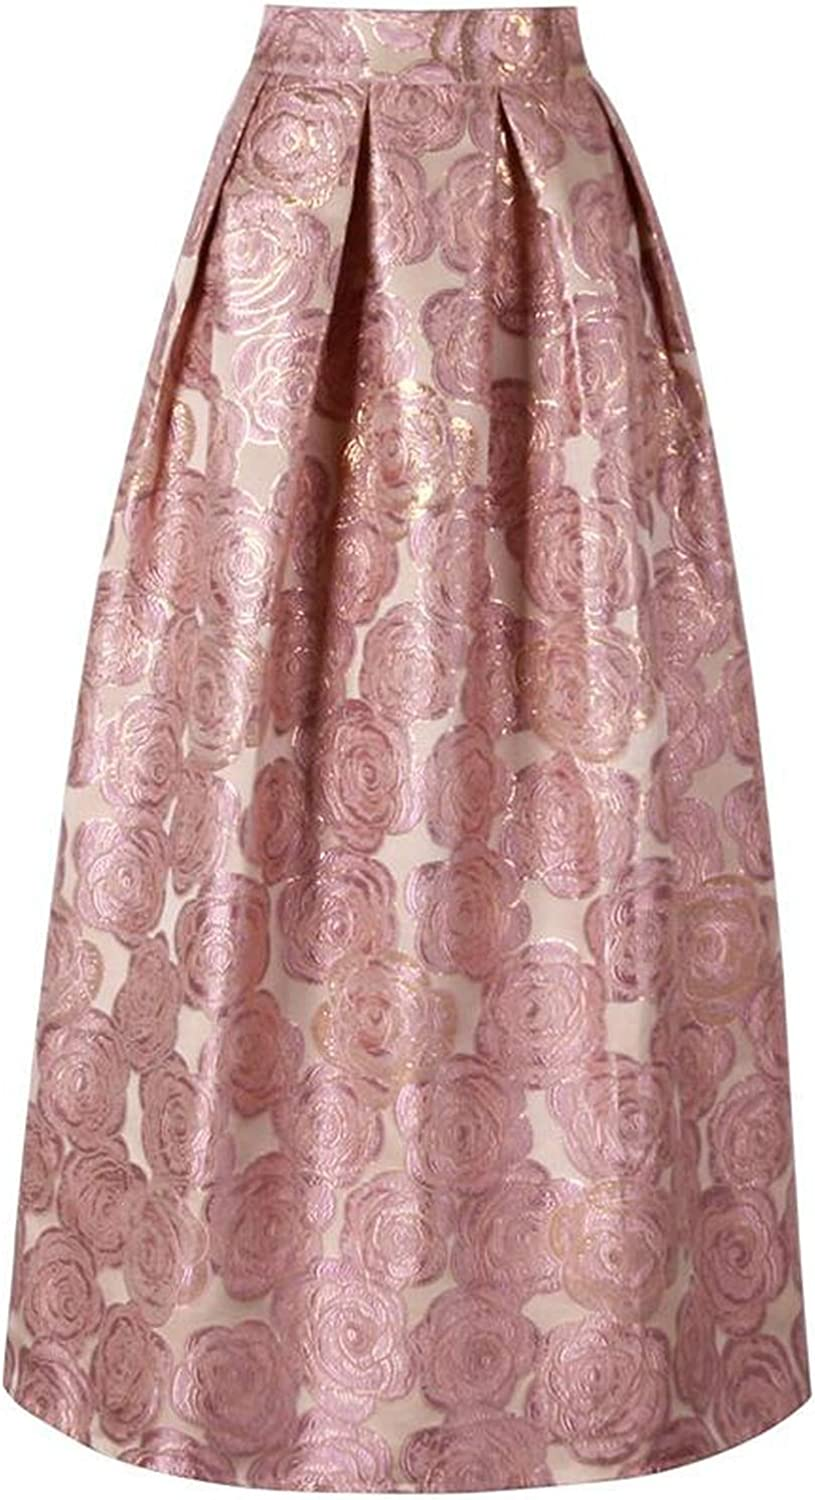 bluee Skieses 2019 Ladies Elegant Floral Print Vintage Maxi Long Skirts High Waist Ball Gown Pleated Flare,Pink,One Size